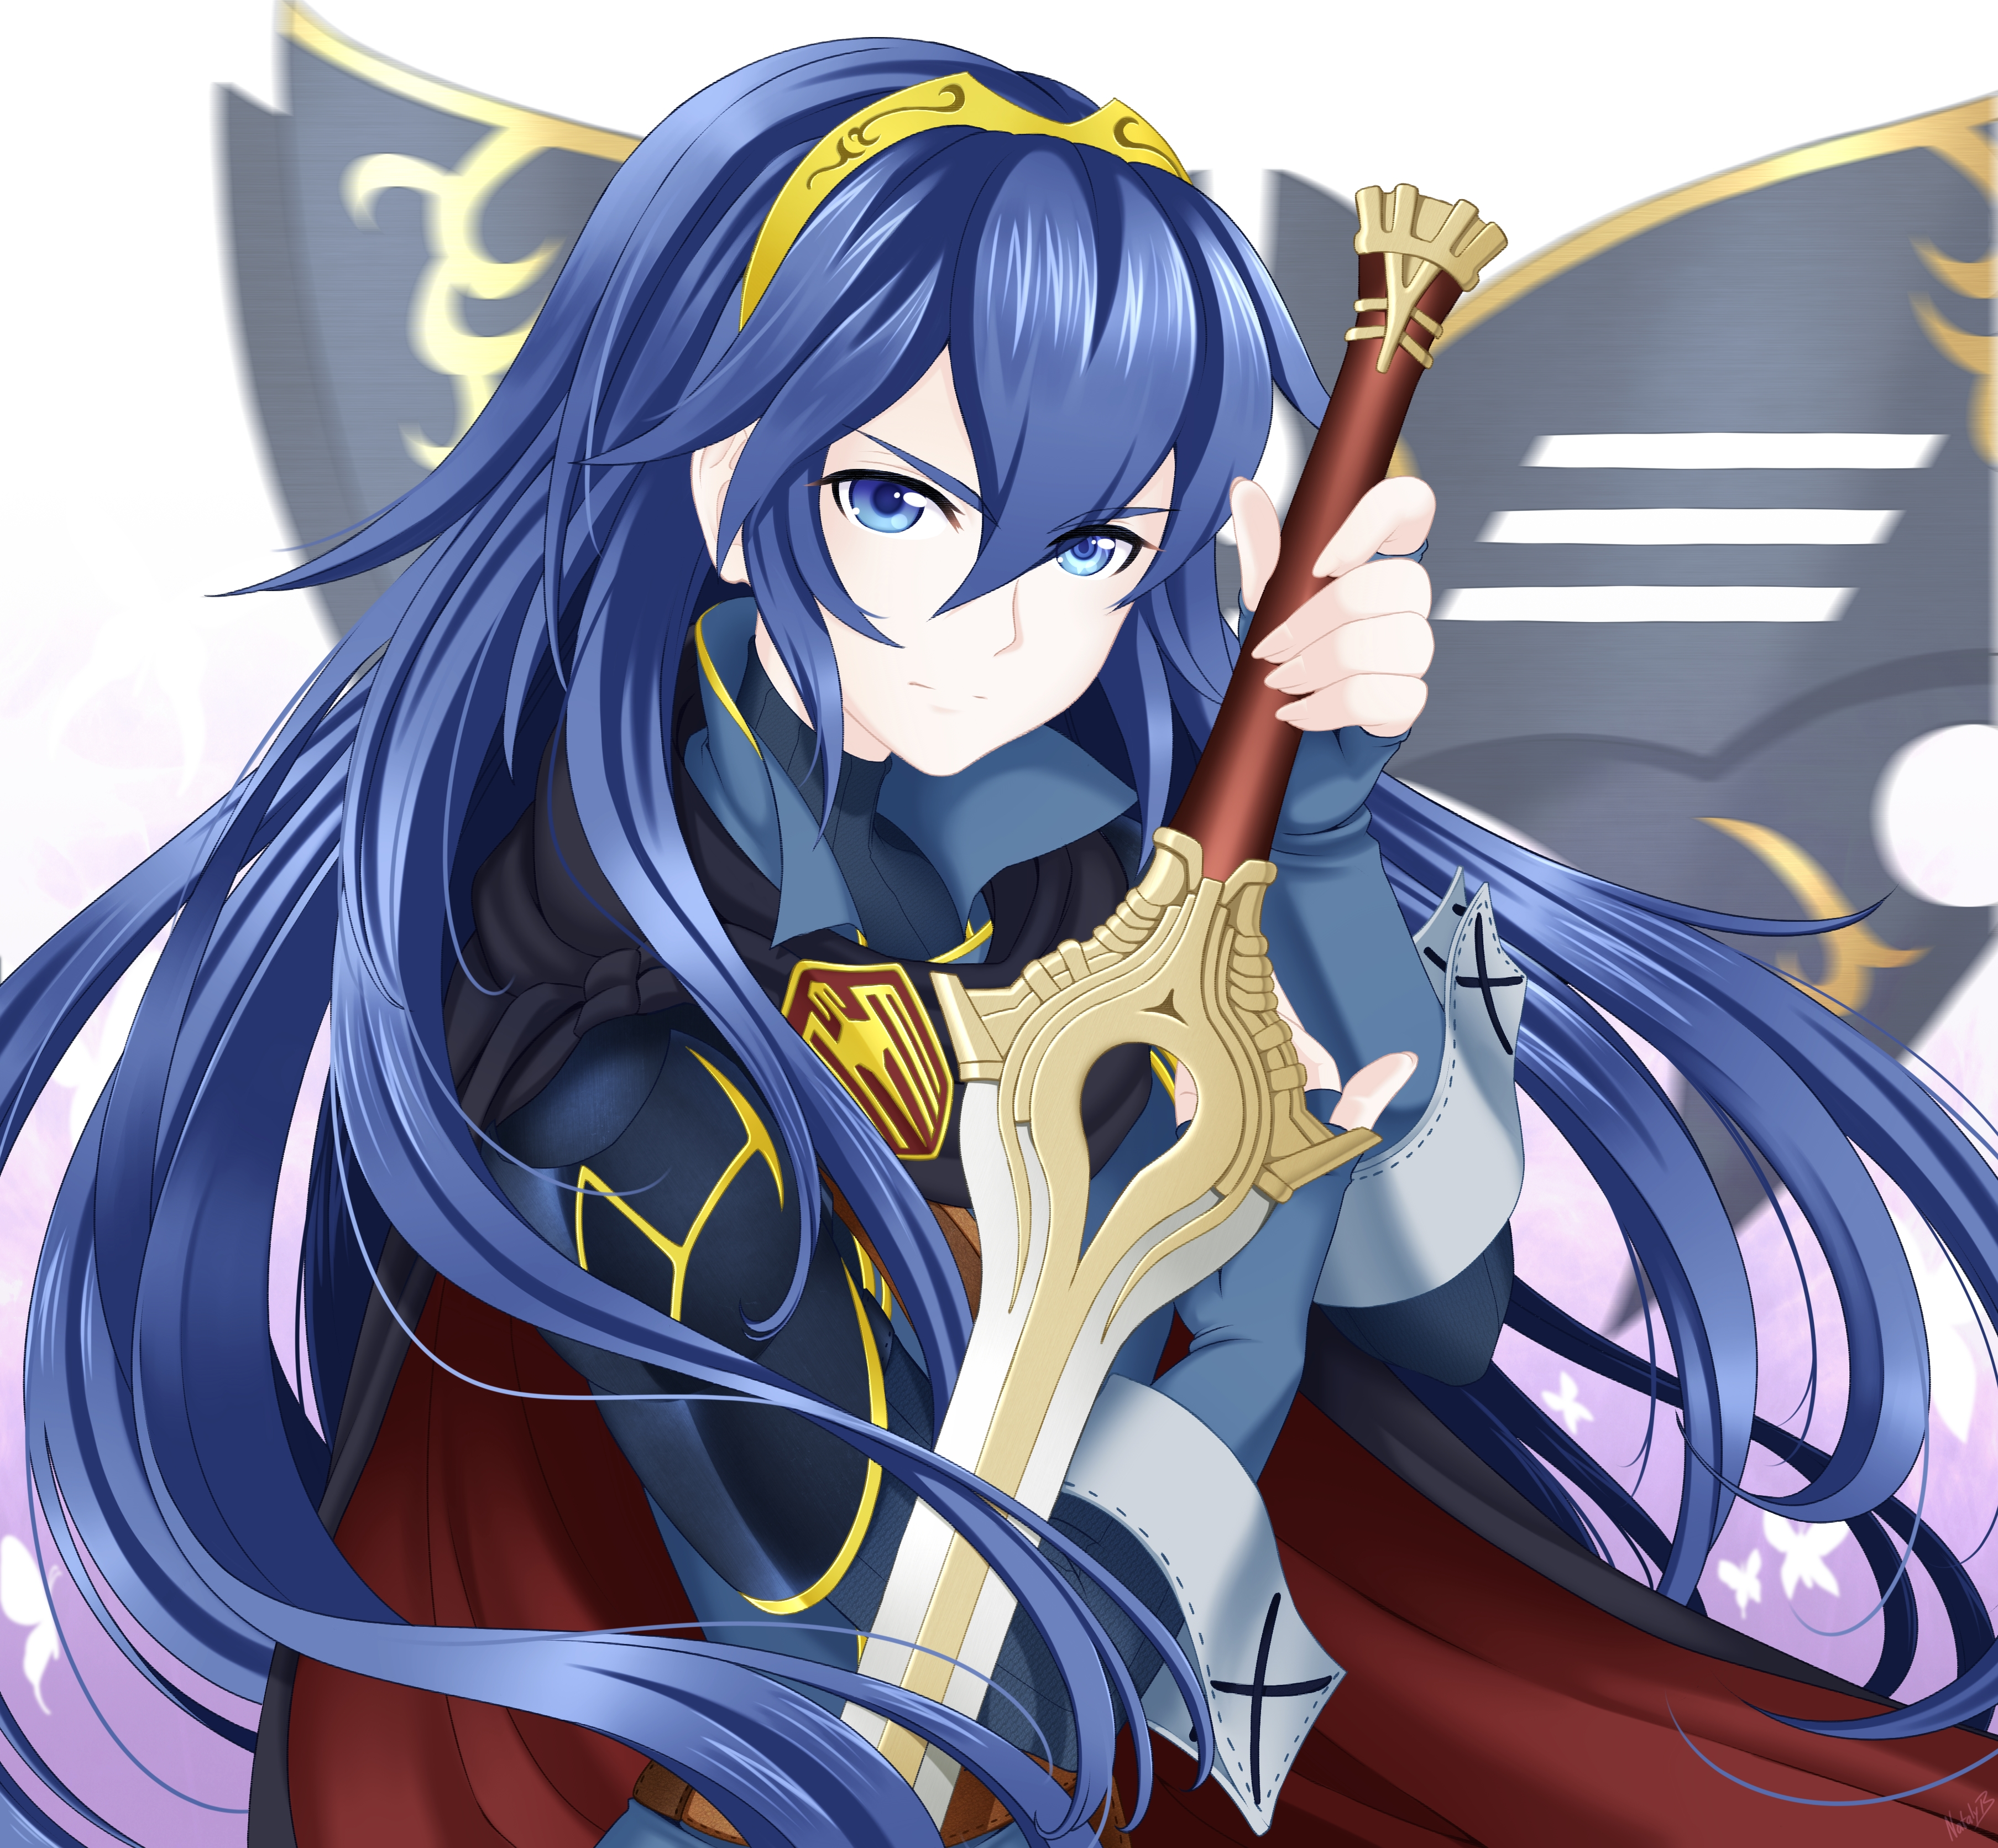 The Big Top (Entrance to the Workshop) [Registered Labyrinth Players] Lucina.(Fire.Emblem).full.1836479